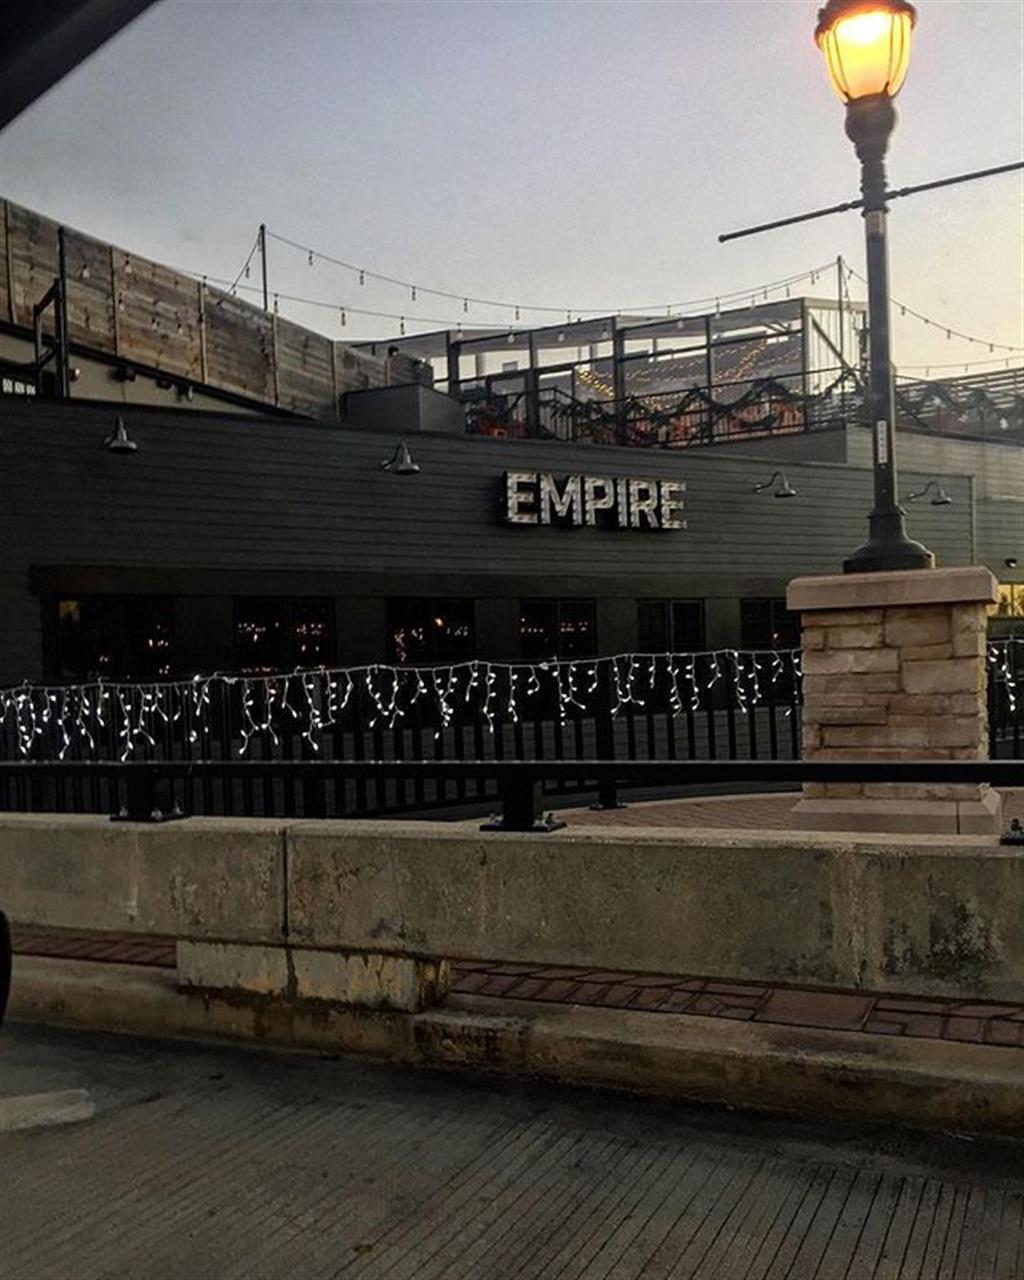 Empire is one of @napervilleil more popular night spots with great drinks, music and dancing. #naperville #chicagosuburbs #leadingrelocal #bairdwarner #downtown